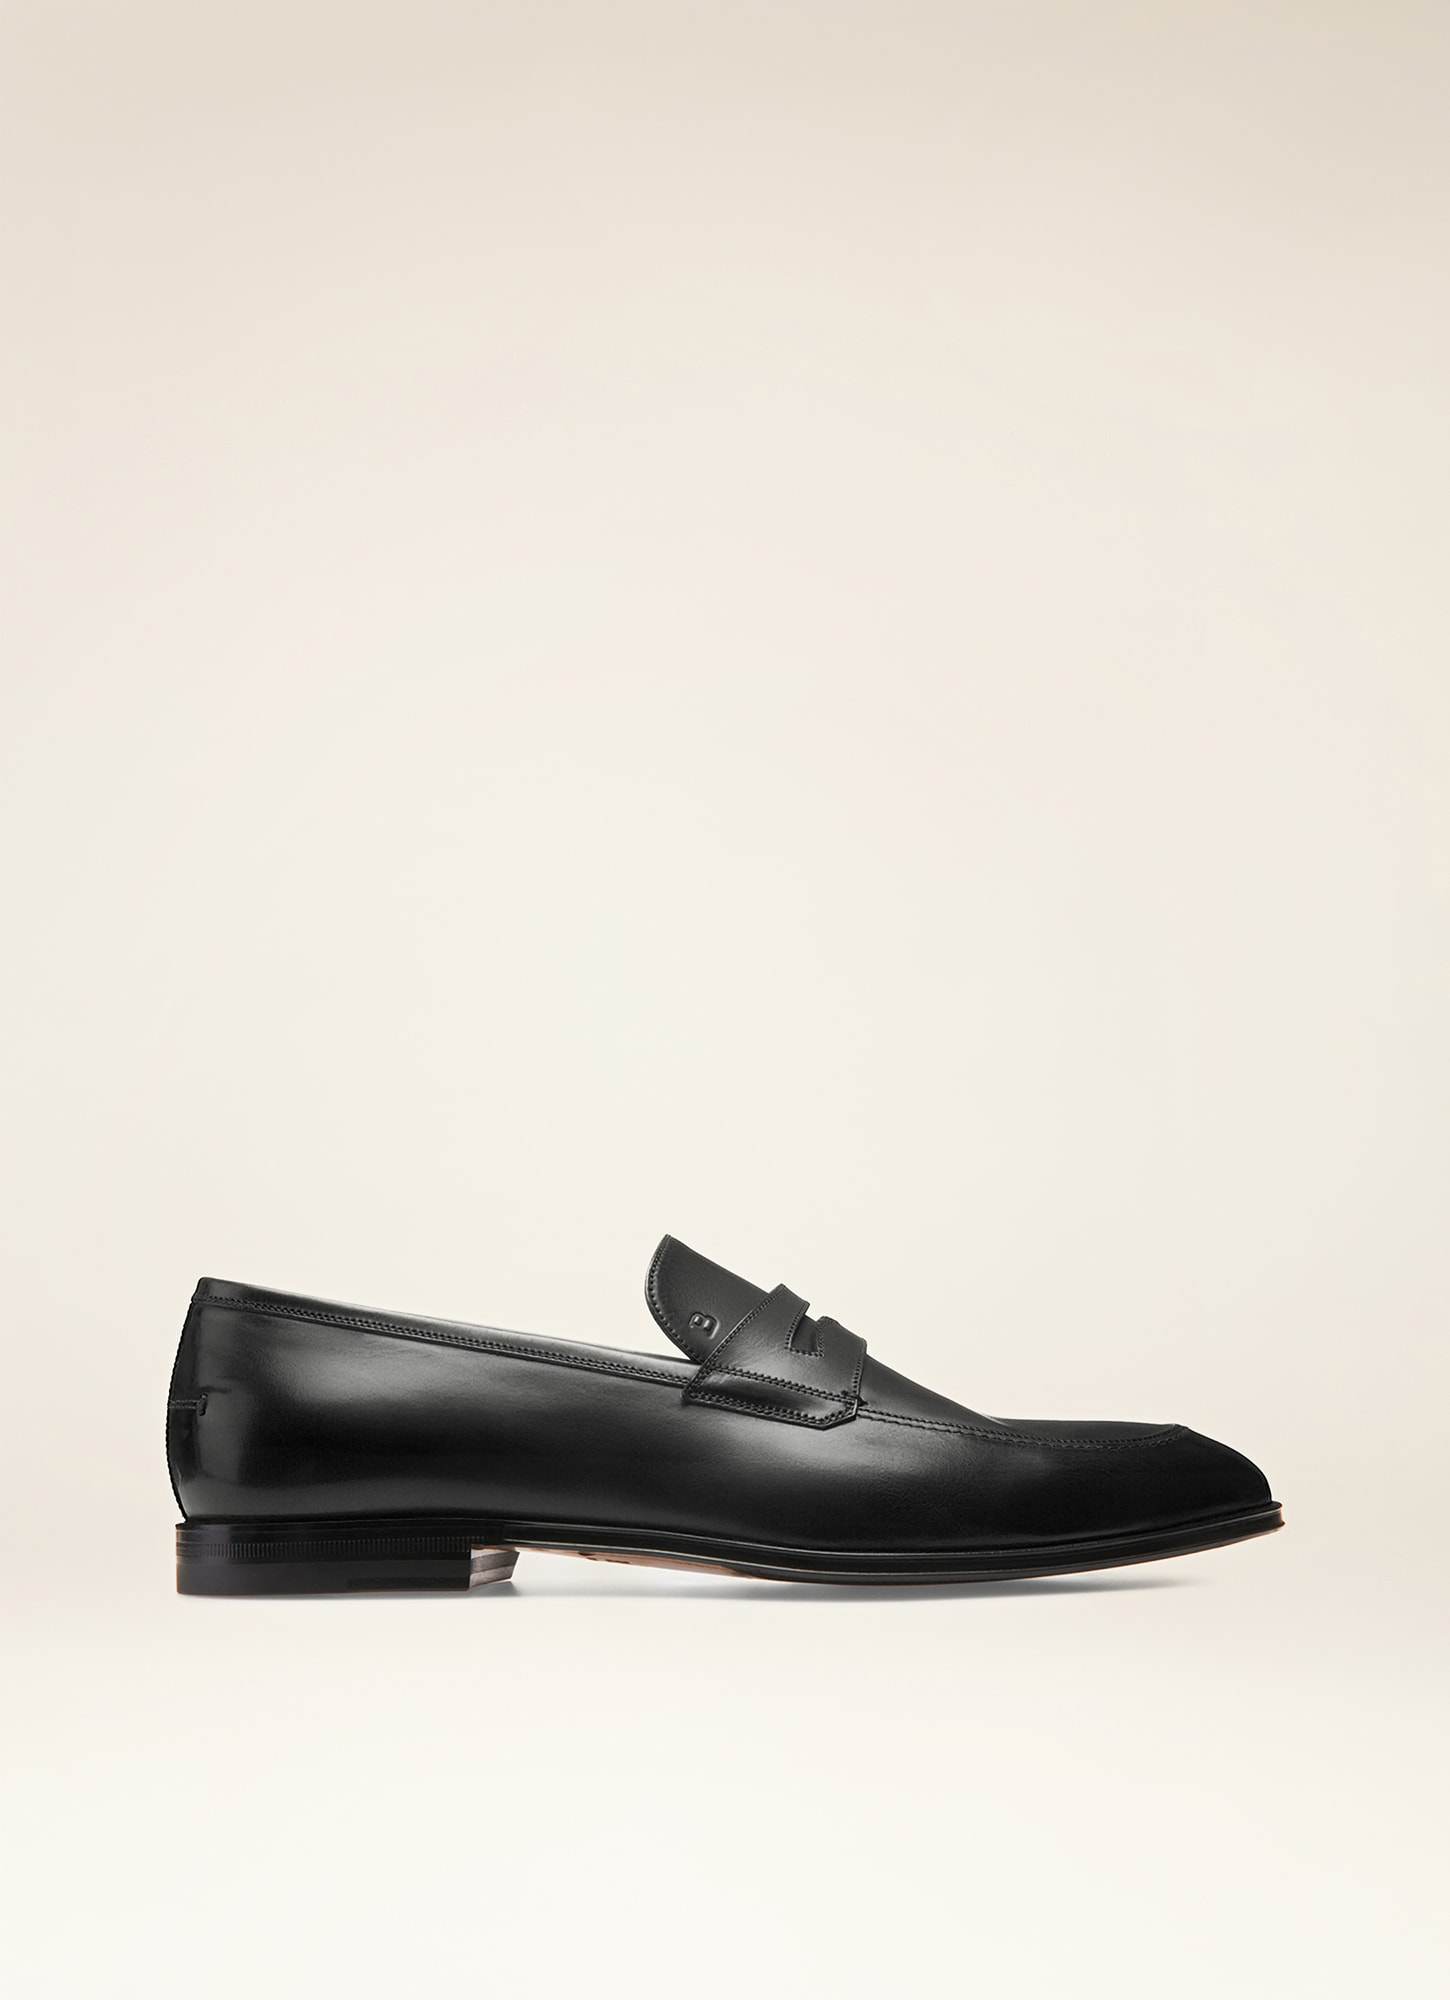 327315f0af4 BLACK CALF Loafers - Bally